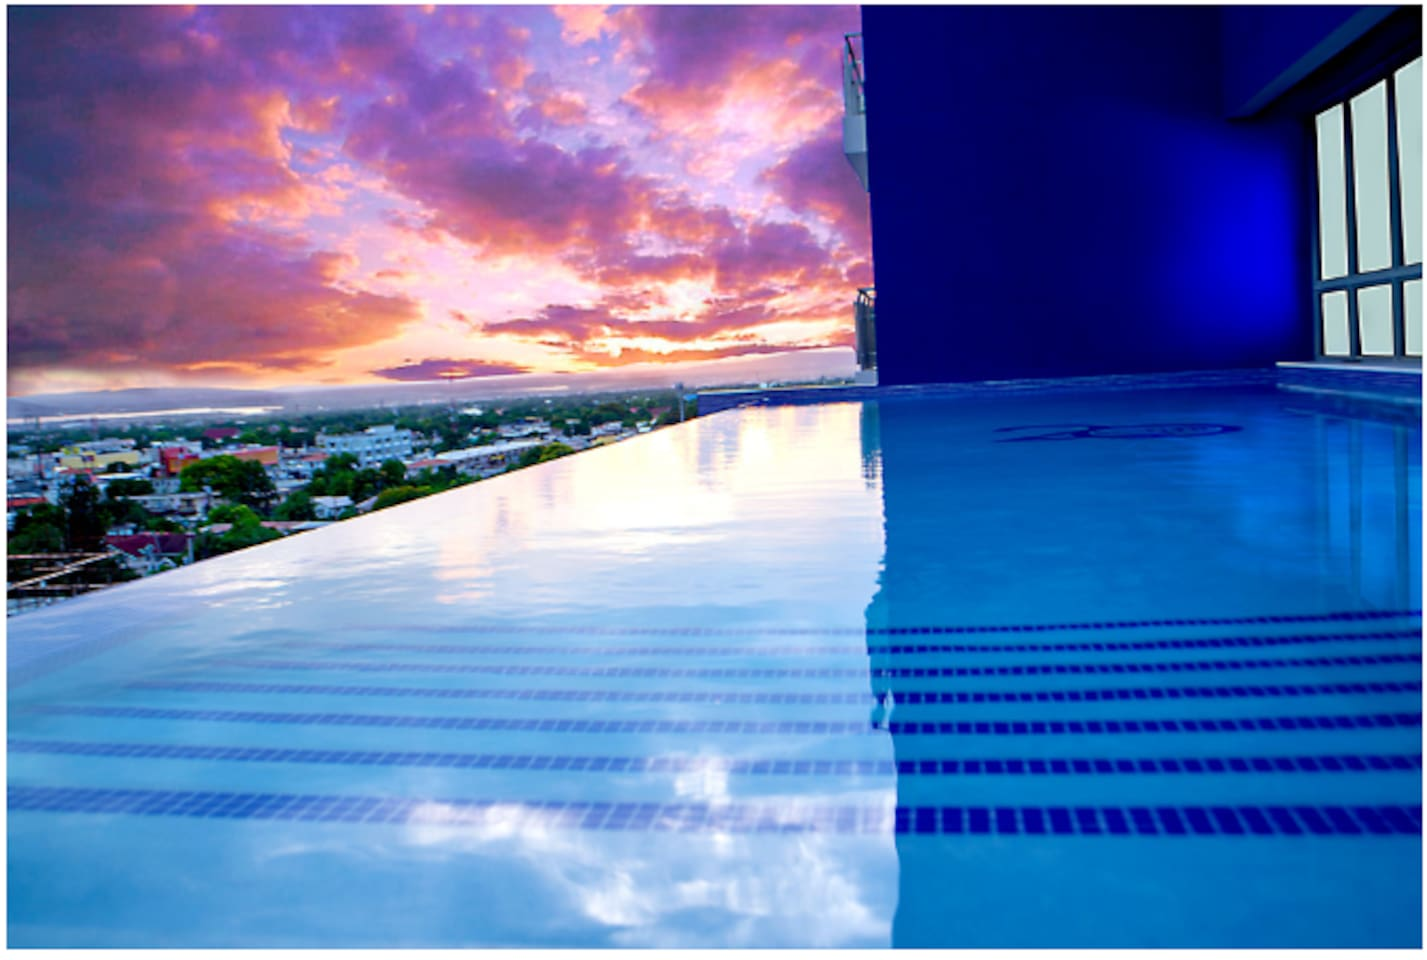 Premium amenities included: Infiniti pool, gym, rooftop deck, elevator, top-notch security